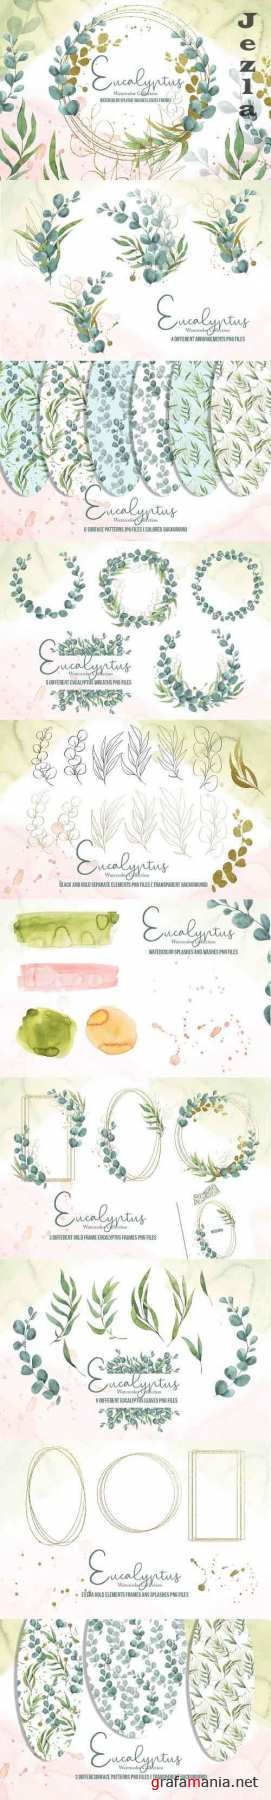 Eucalyptus Watercolor Collection - 5907503